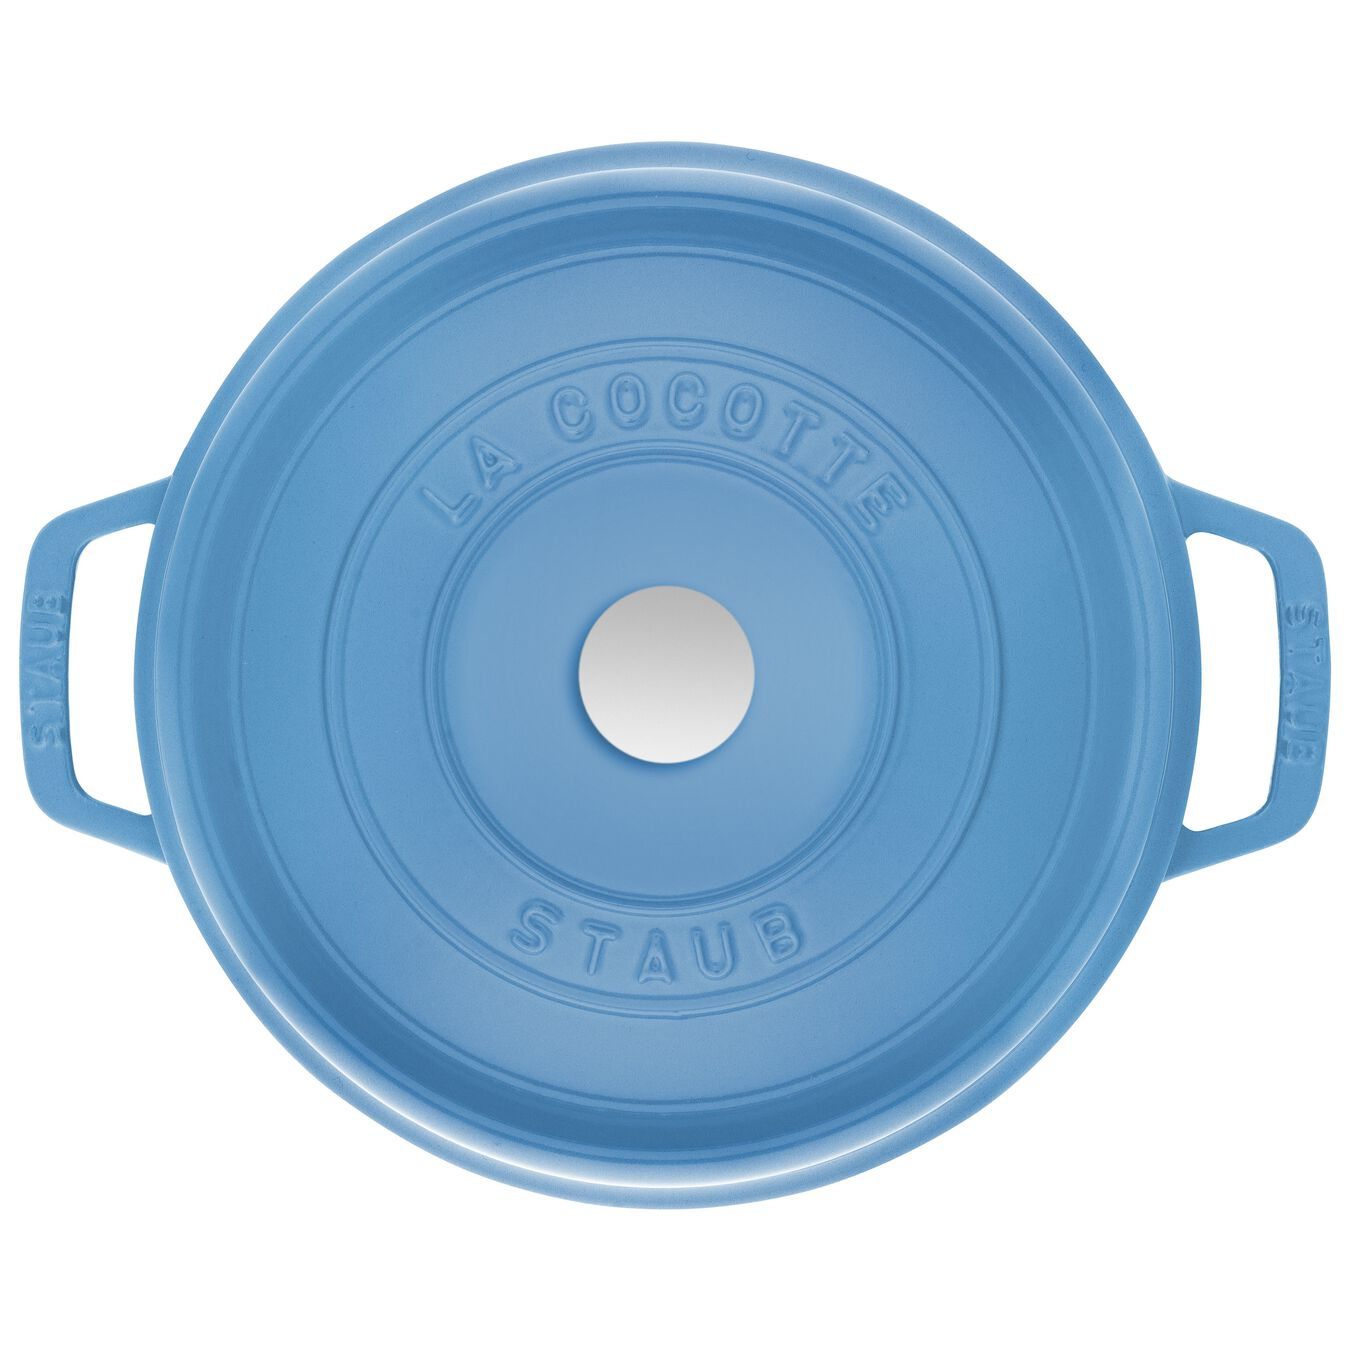 5 qt, round, Cocotte, ice-blue - Visual Imperfections,,large 3